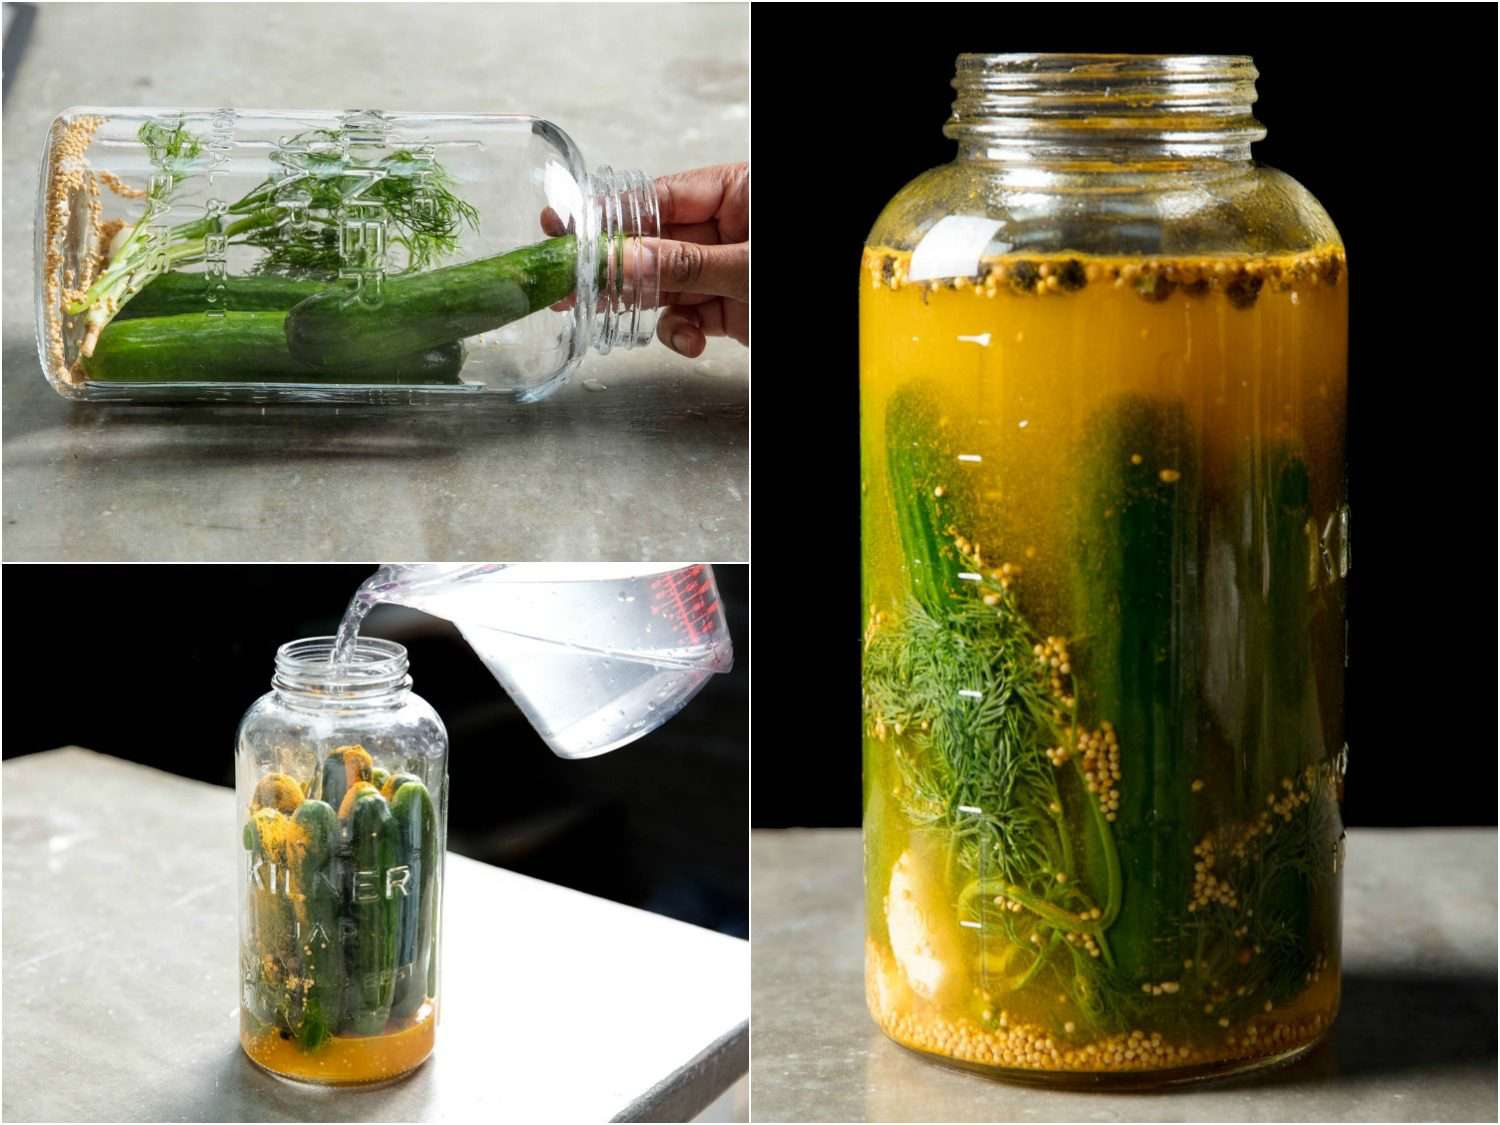 Collage of three photos depicting how to pack a jar of pickles. Counterclockwise from top left: Pickle jar with aromatic vegetables and spices and two cucumbers resting on its side on a counter, with a hand placing another pickle in the jar; pickle jar packed with cucumbers standing upright on the container, with brine being poured into the jar from measuring cup; pickle jar filled with brine, cucumbers, spices, and vegetables viewed from side.